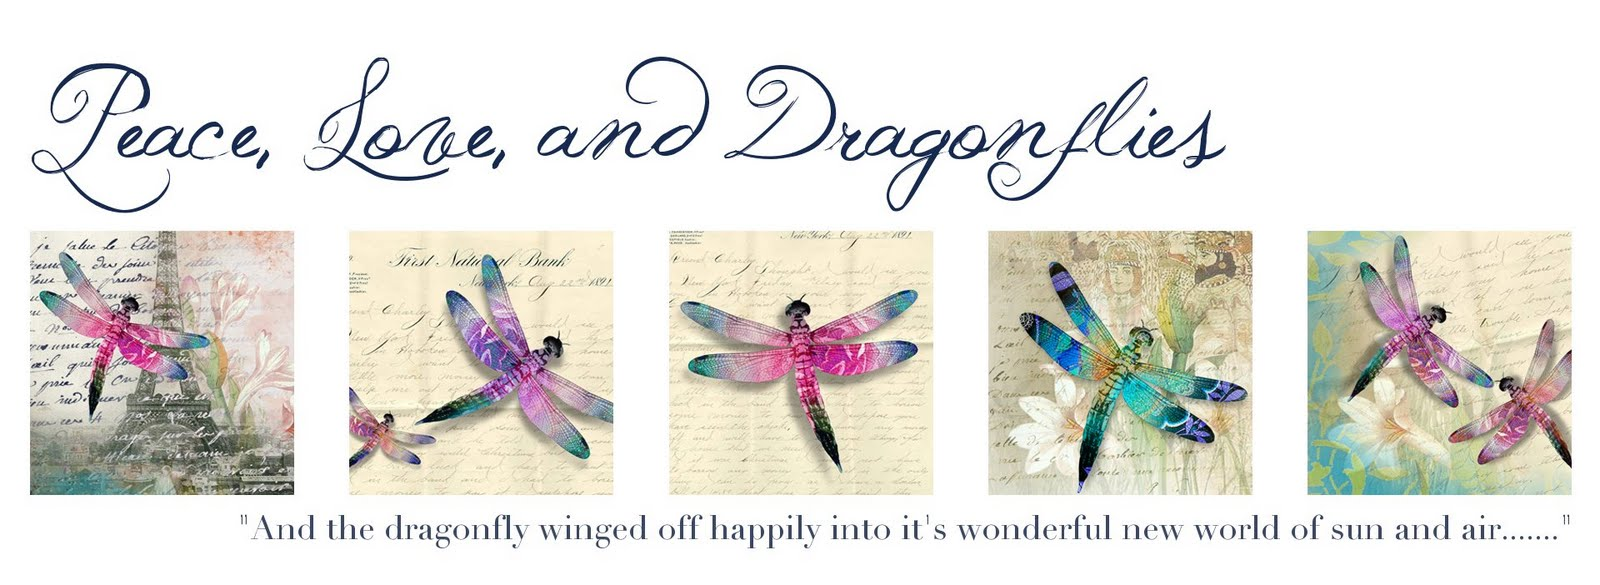 Peace, Love, and Dragonflies